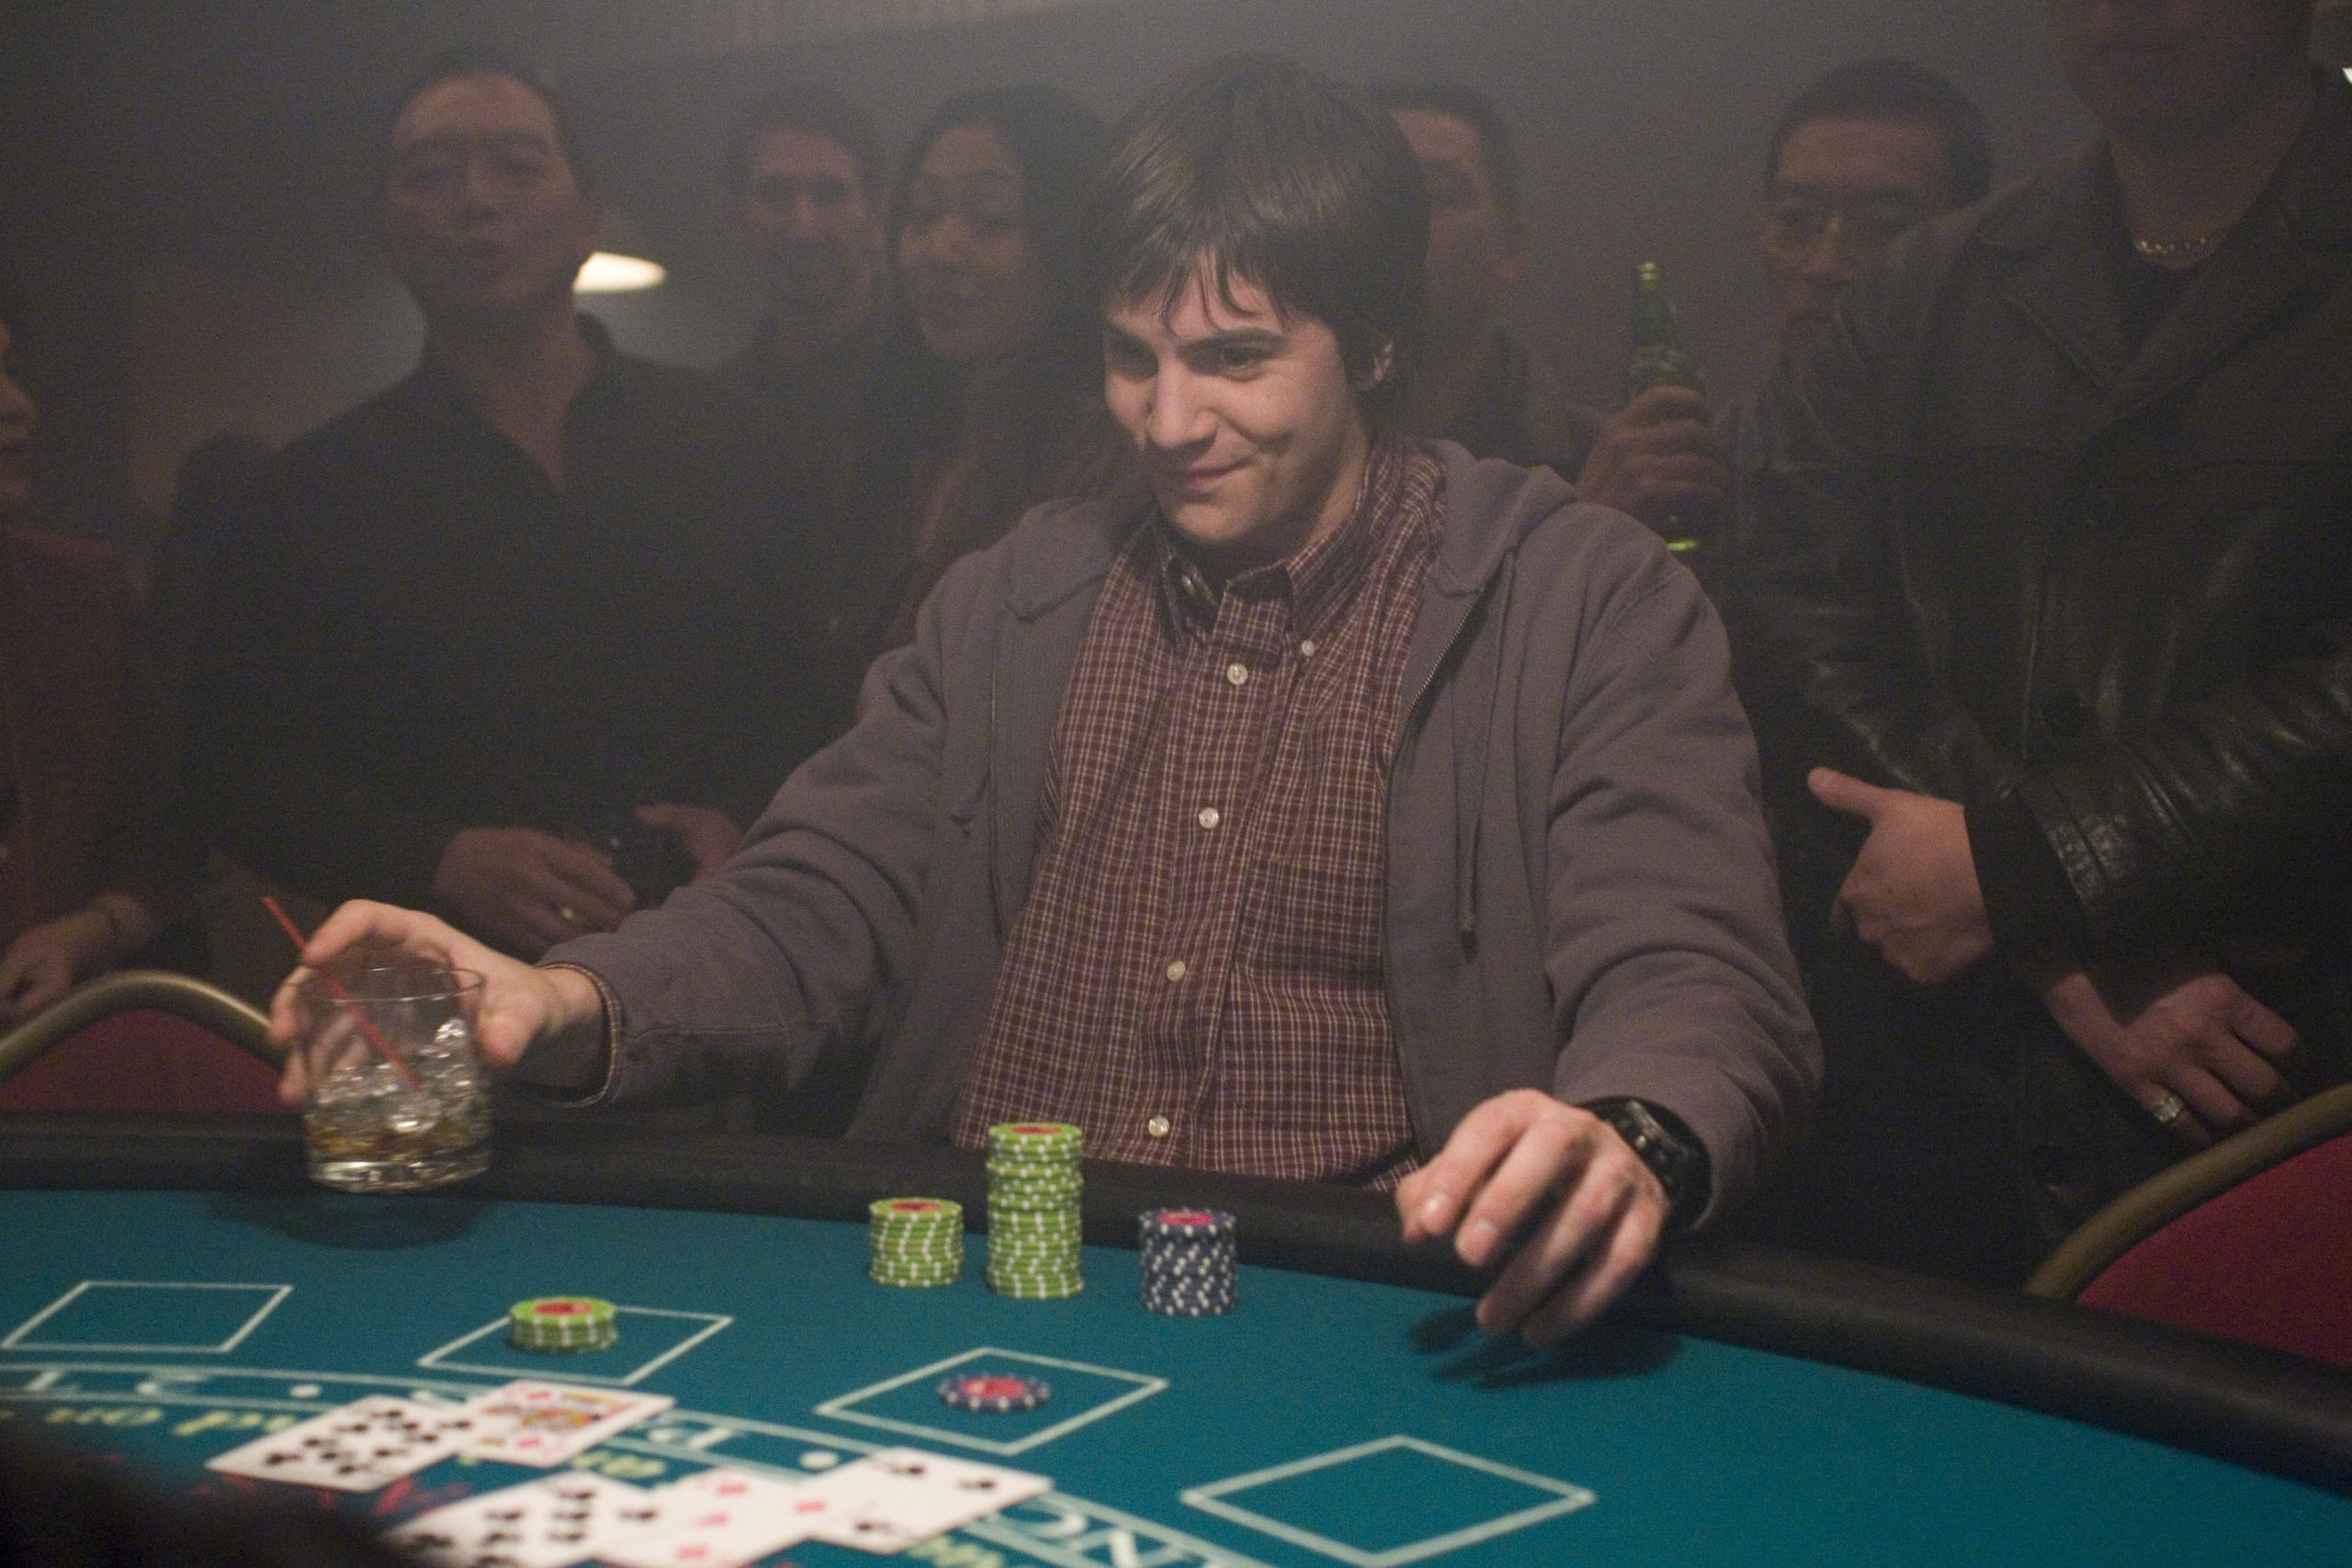 21 gambling jim sturgess betting gambling blackjack films movies